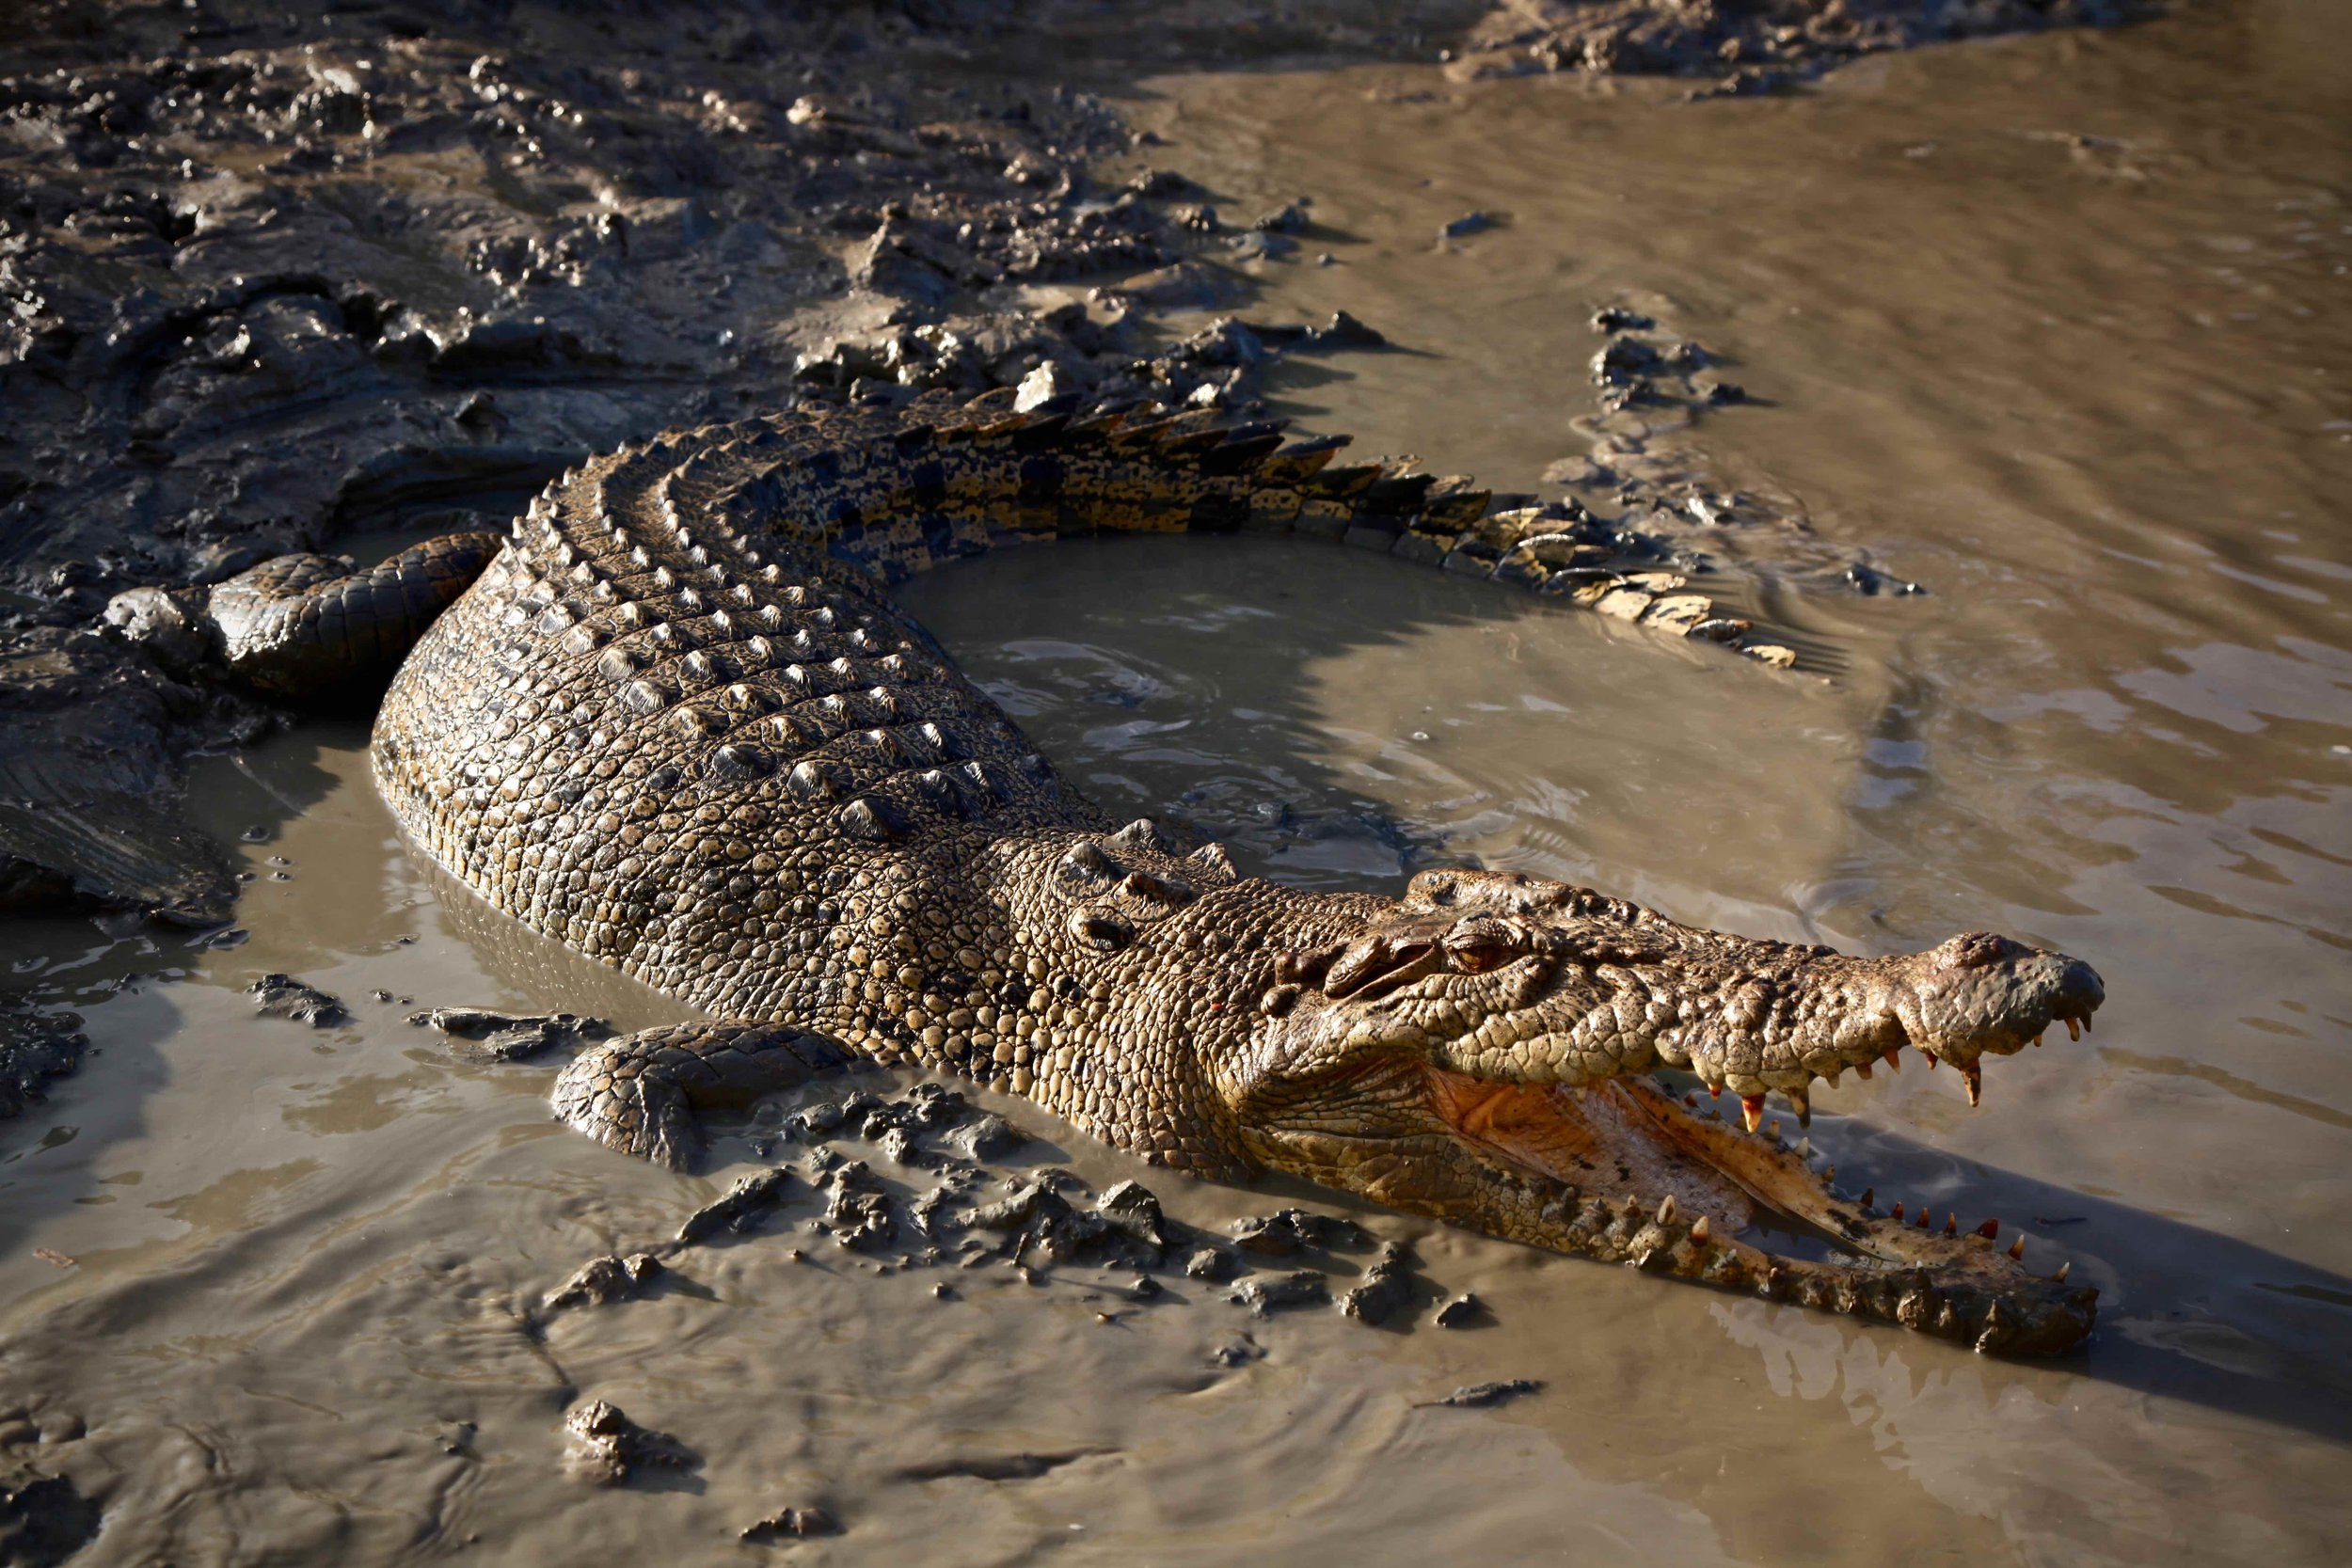 Crocodile on the Adelaide River in the Northern Territory — this was one of the small ones.